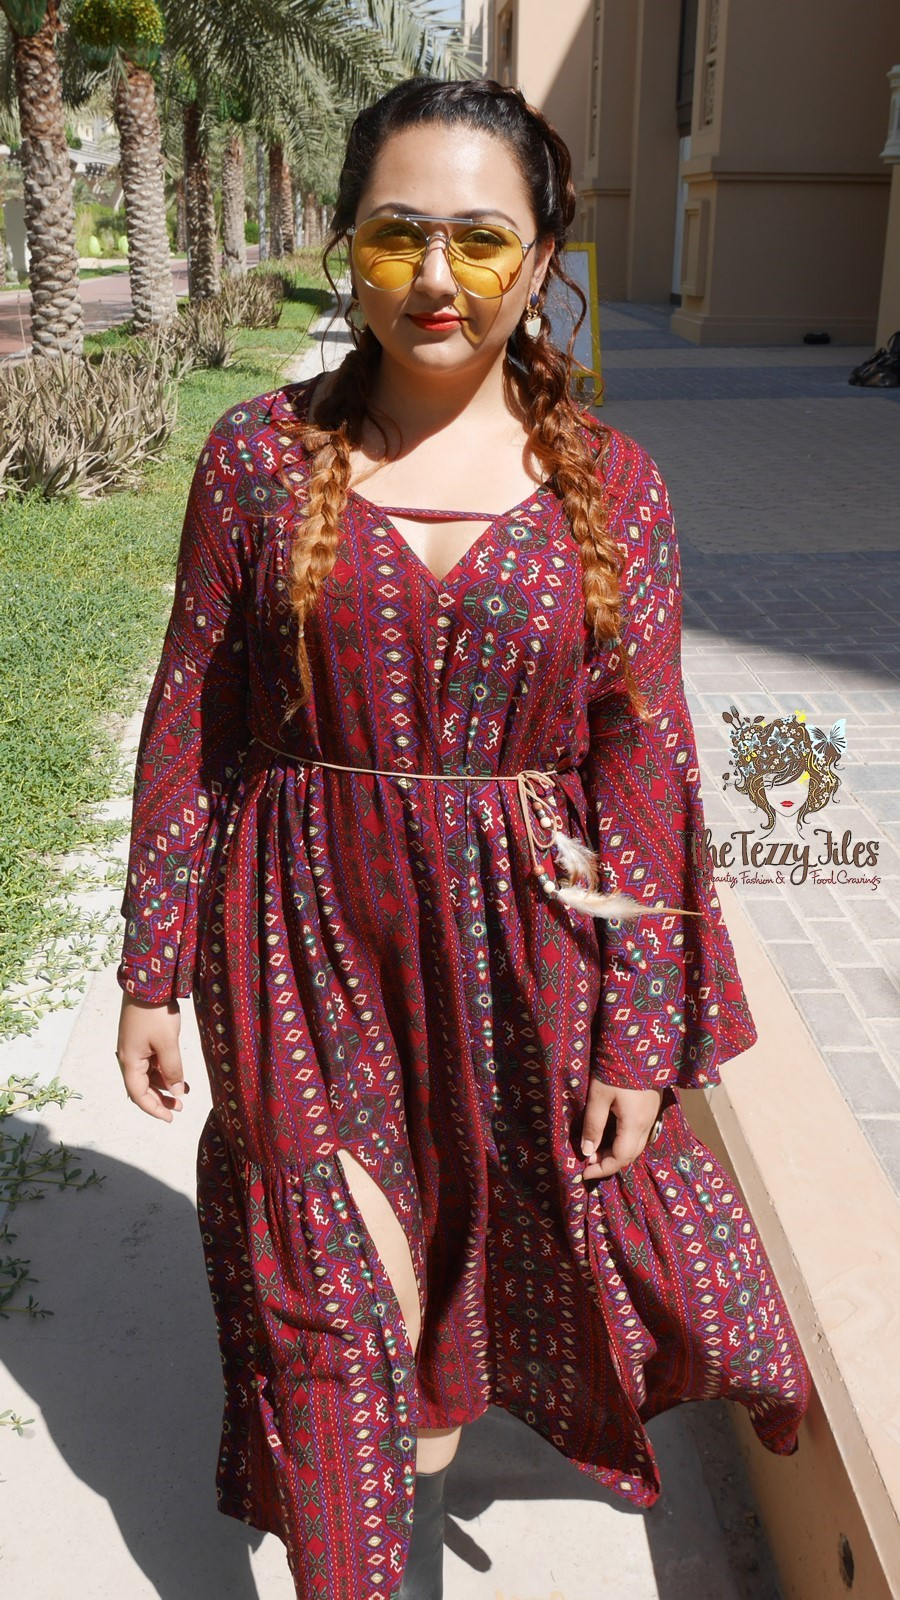 Blowout Bar Salon Shein Dress Review Fashion Blog The Tezzy Files Dubai Fashion Blog Khaleesi Style Braids Boho Bohemian Girls (12)